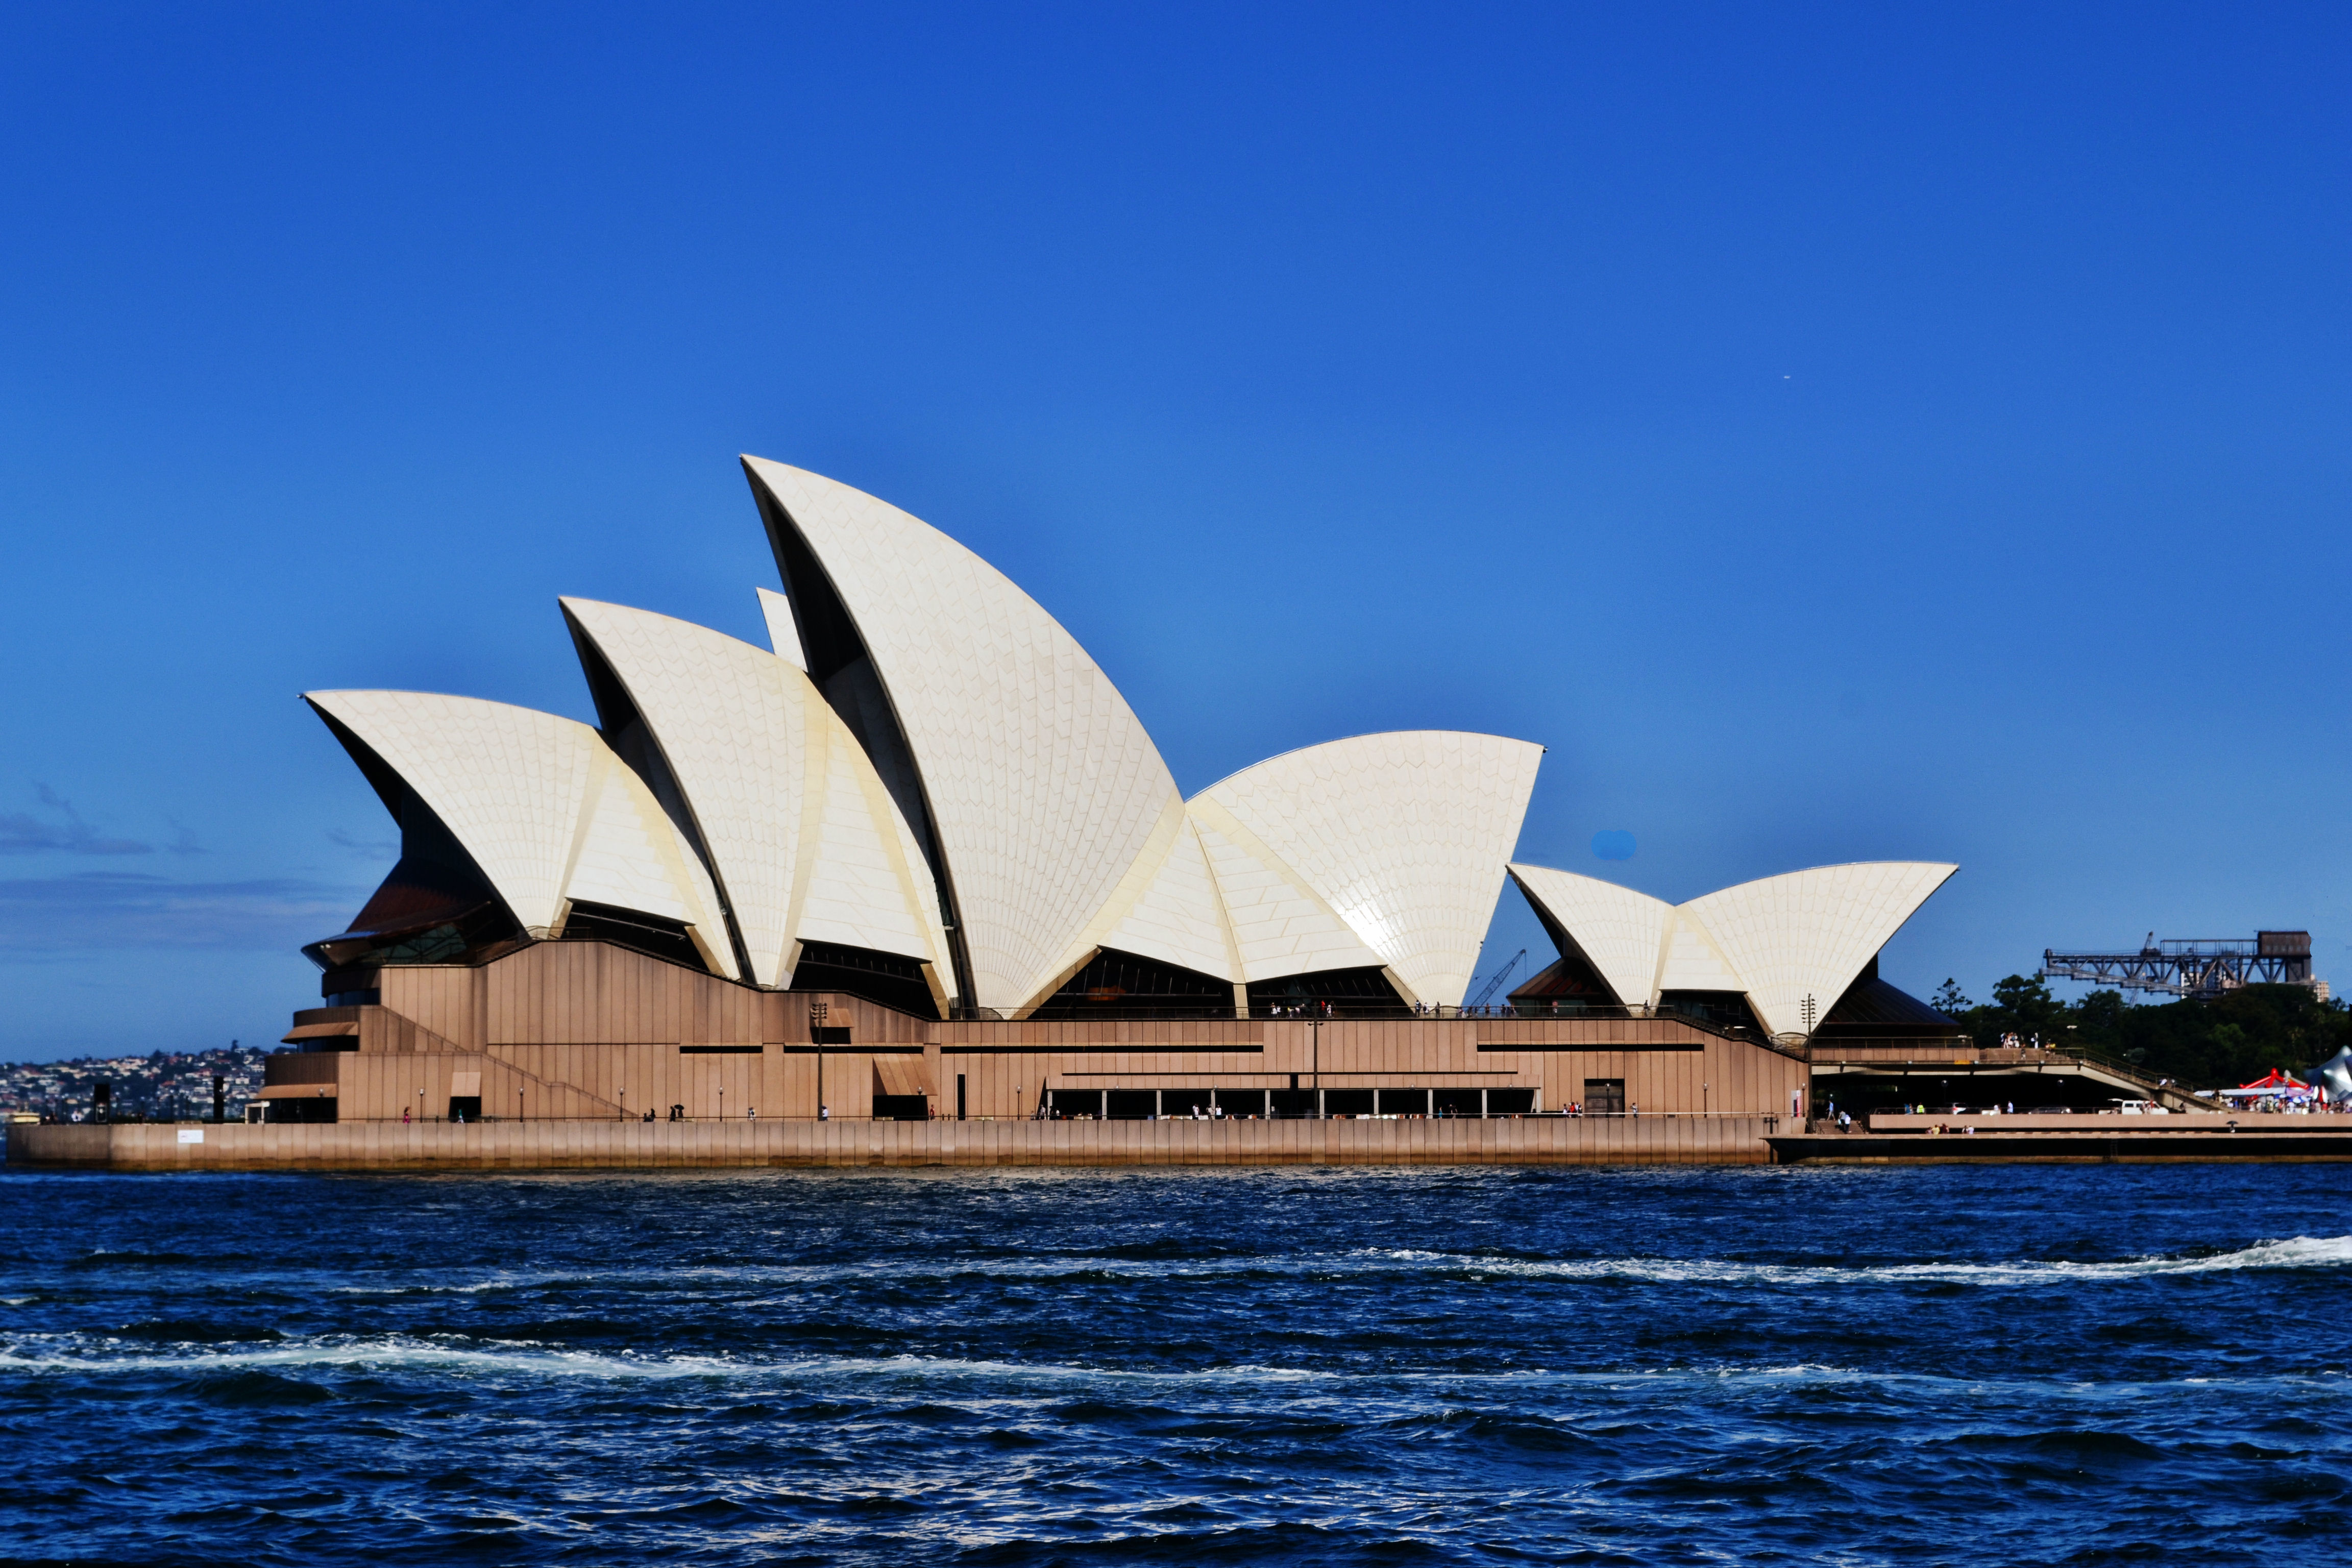 61 sydney opera house hd wallpapers backgrounds for Sydney opera housse